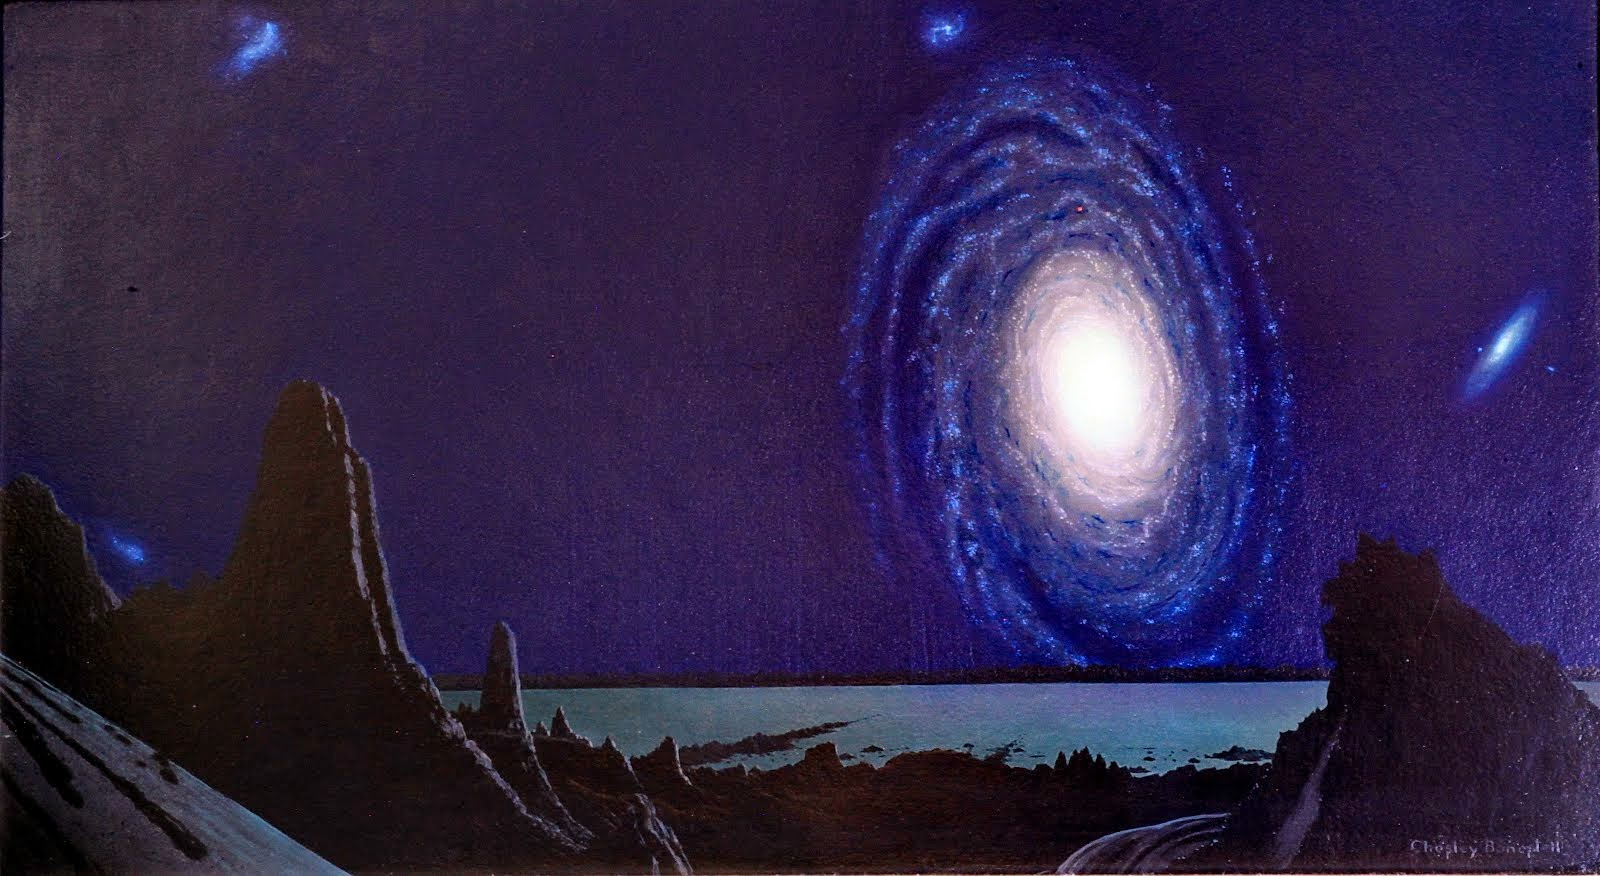 The Milky Way Galaxy from a Hypothetical Planet by Chesley Bonestell